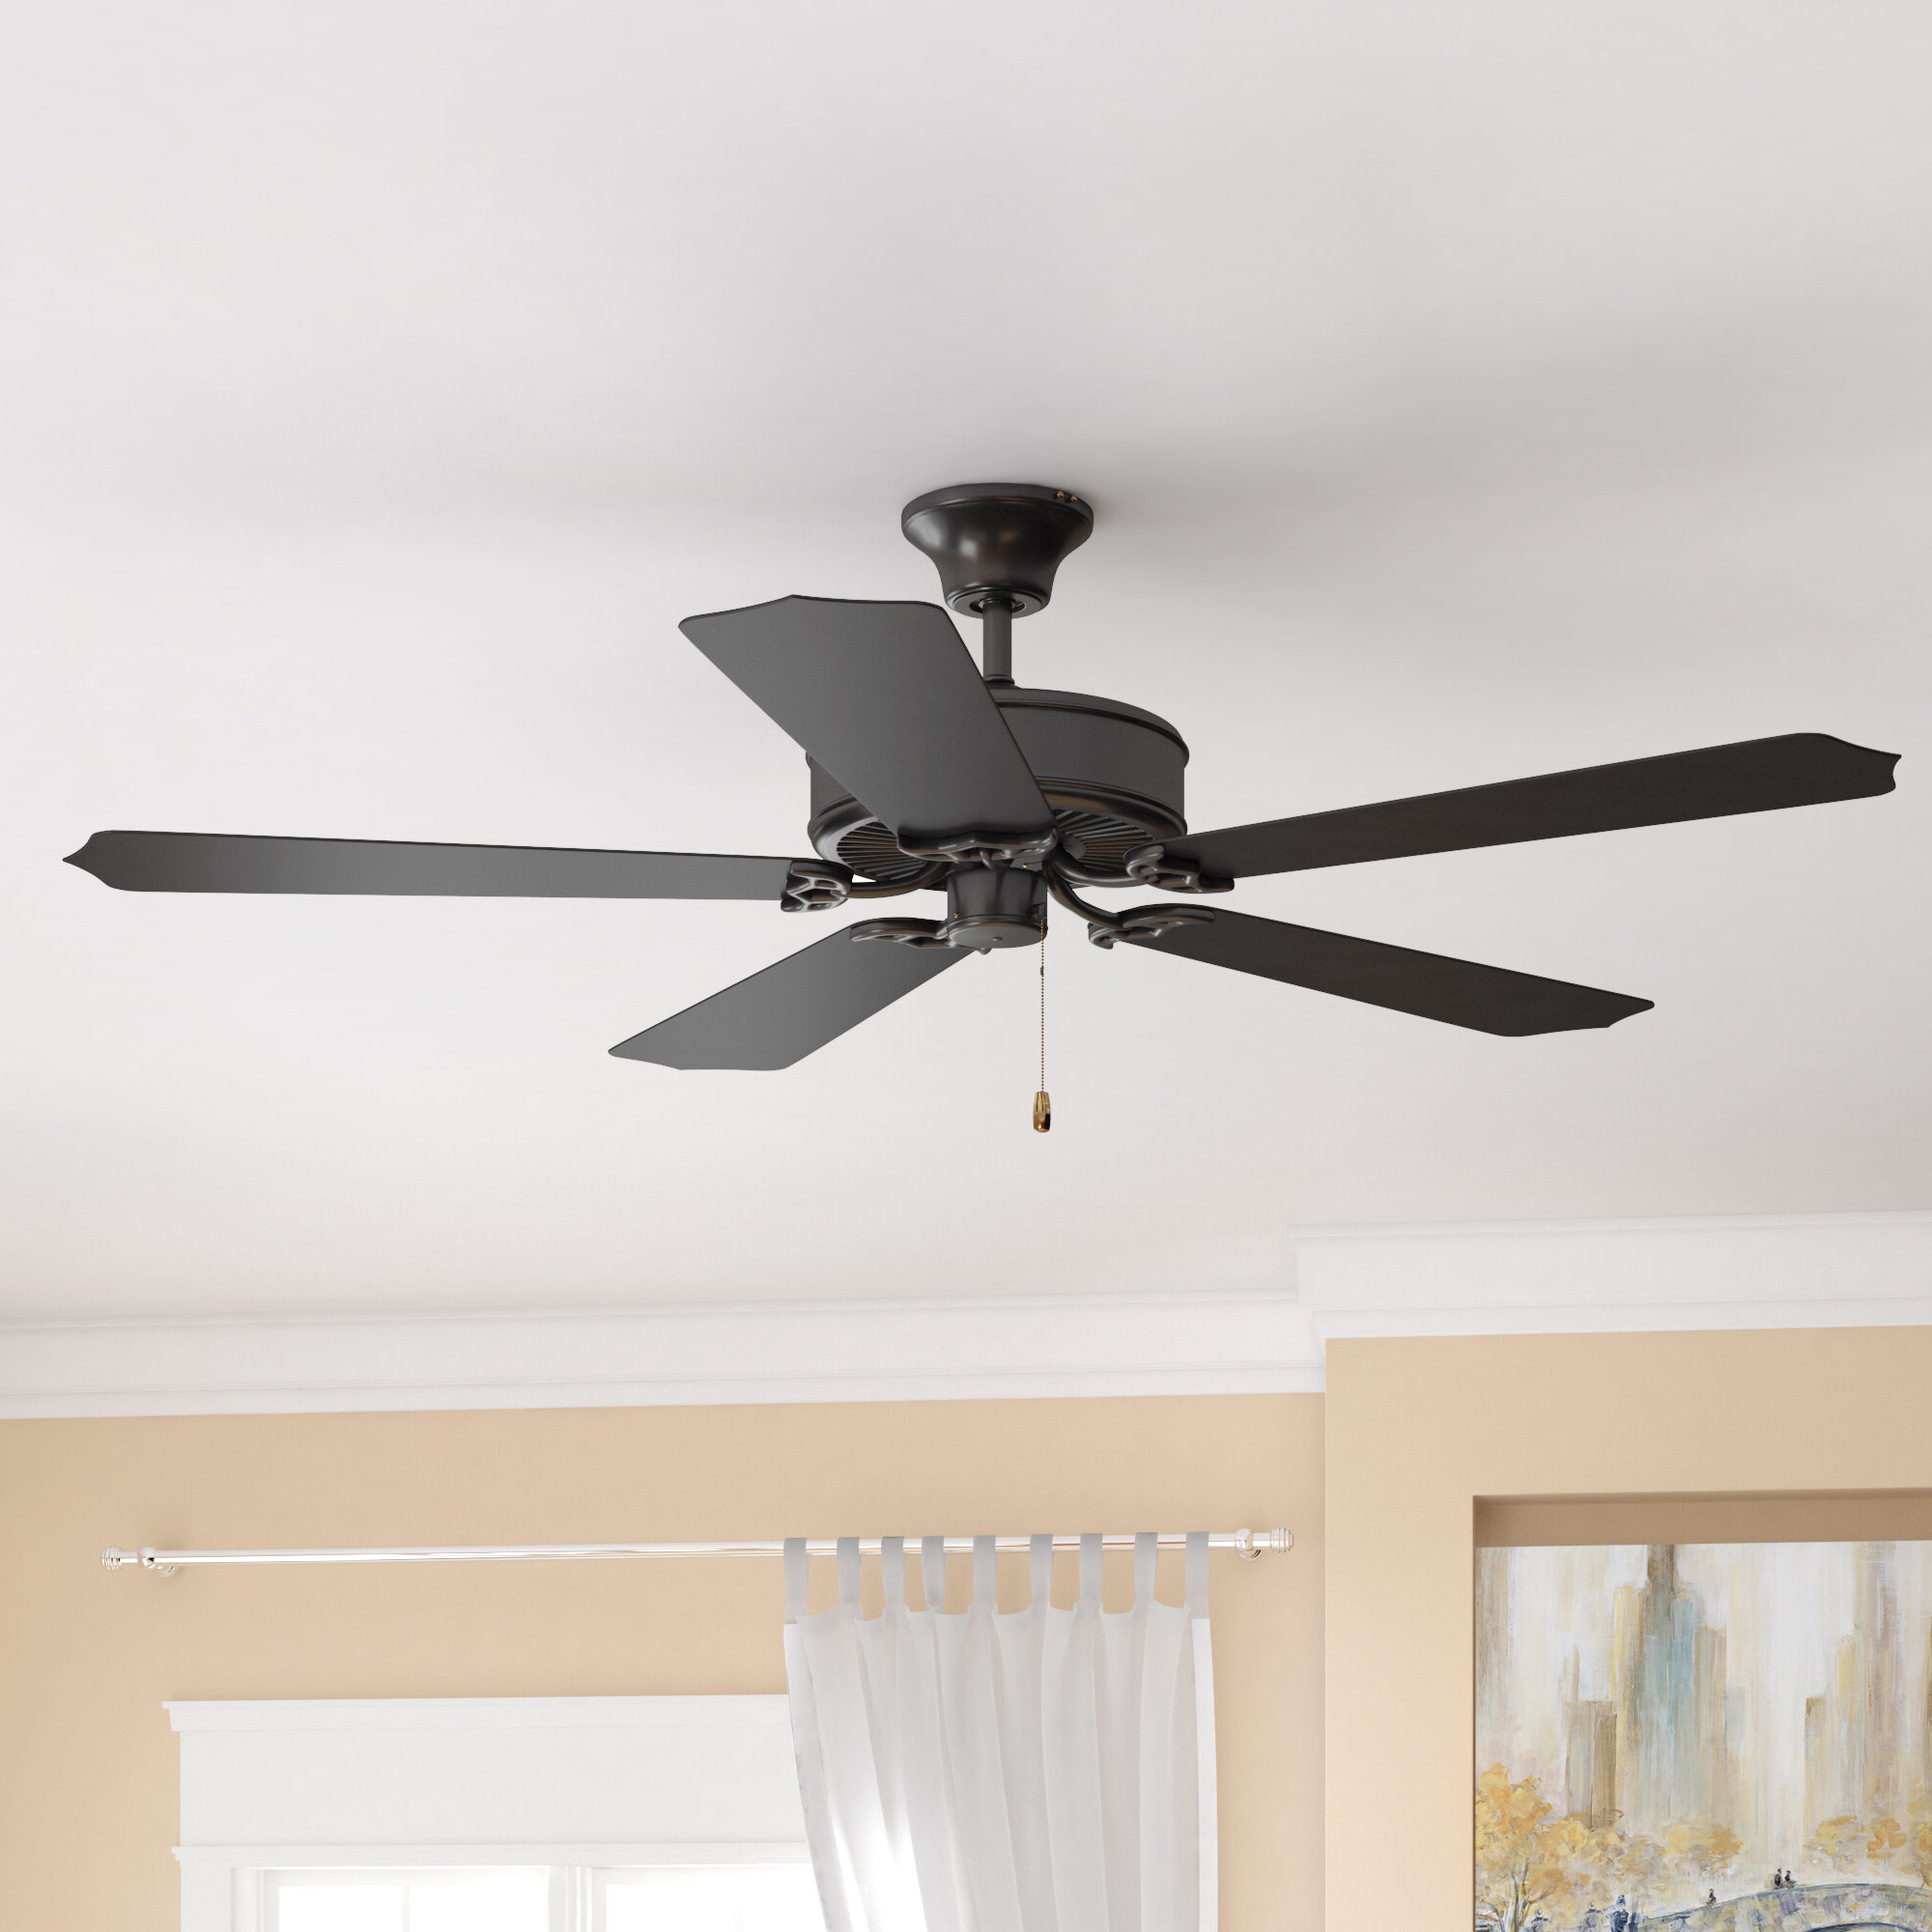 Wayfair Intended For 2020 Rainman 5 Blade Outdoor Ceiling Fans (View 19 of 20)